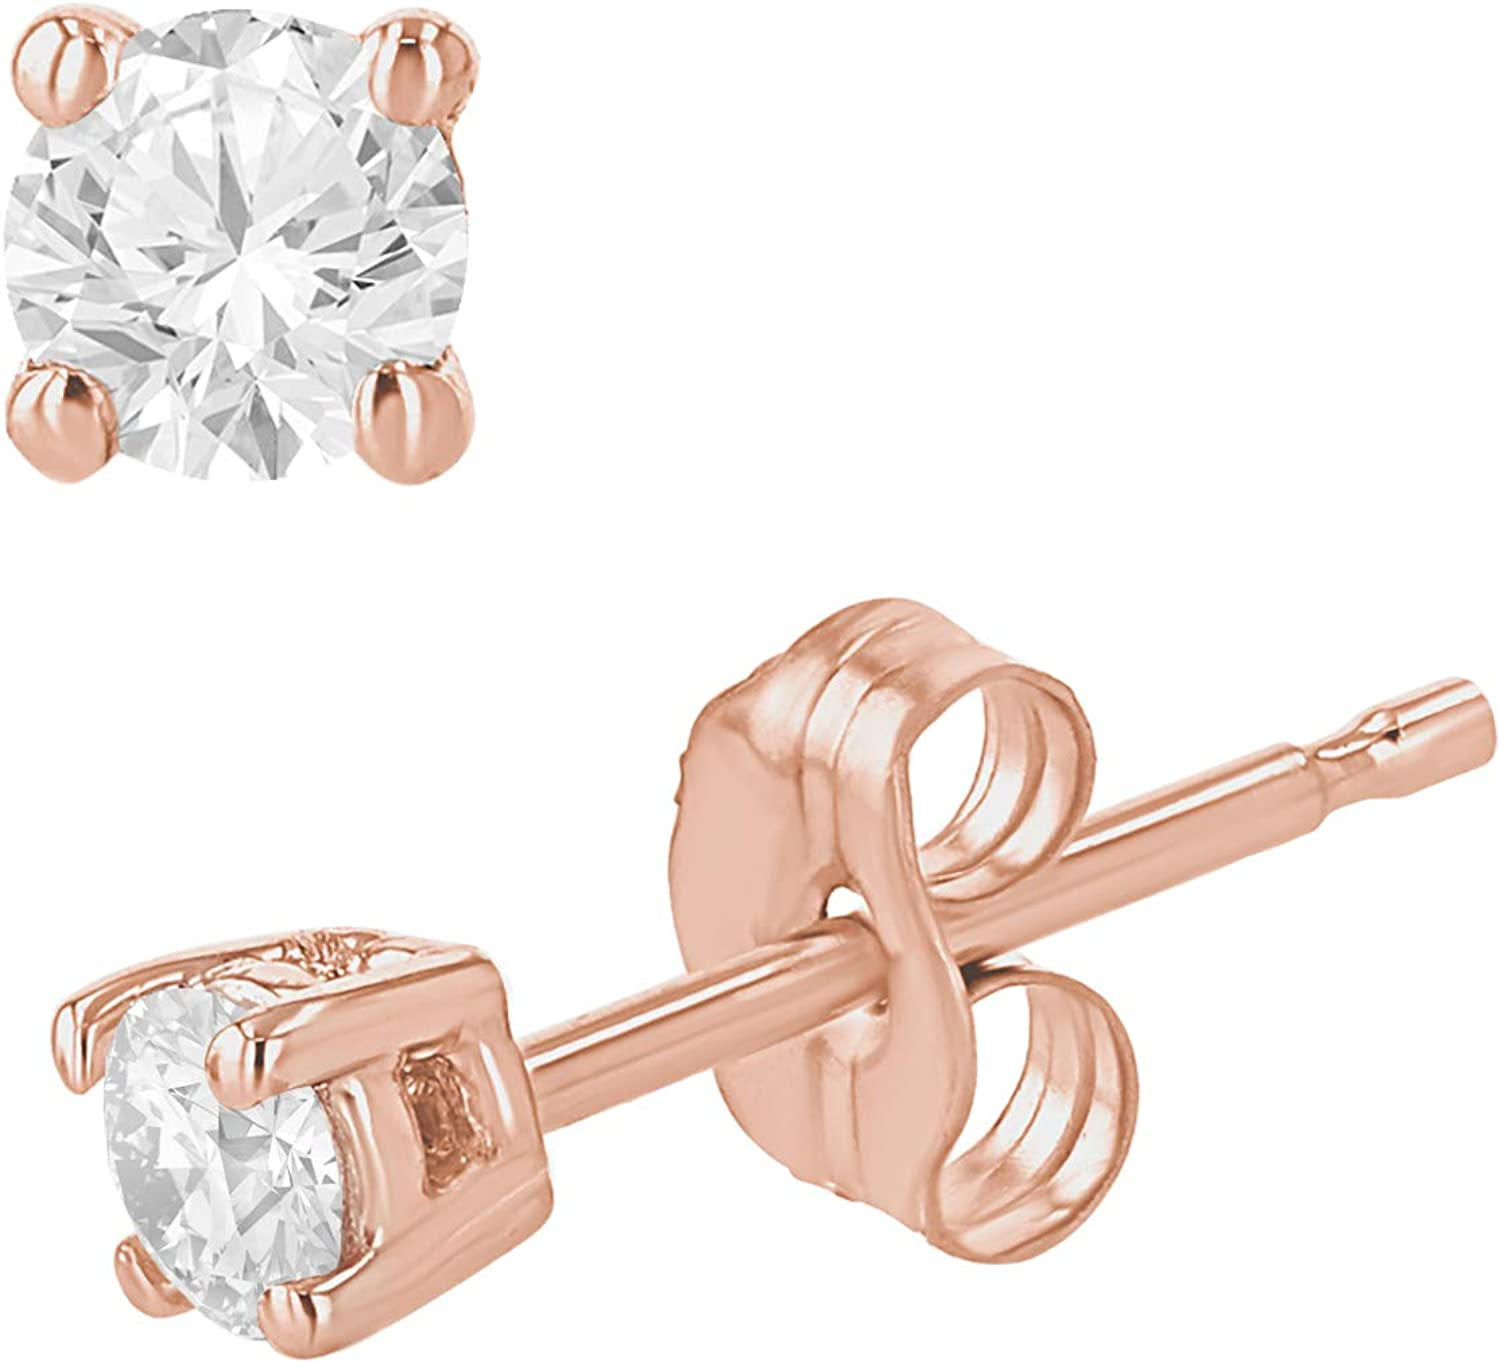 0.12-0.55 Carat Total Weight Round VS Diamond Stud Earrings for Women in 14K White, Yellow, or Rose Gold (0.30cttw and up IGL Certified)